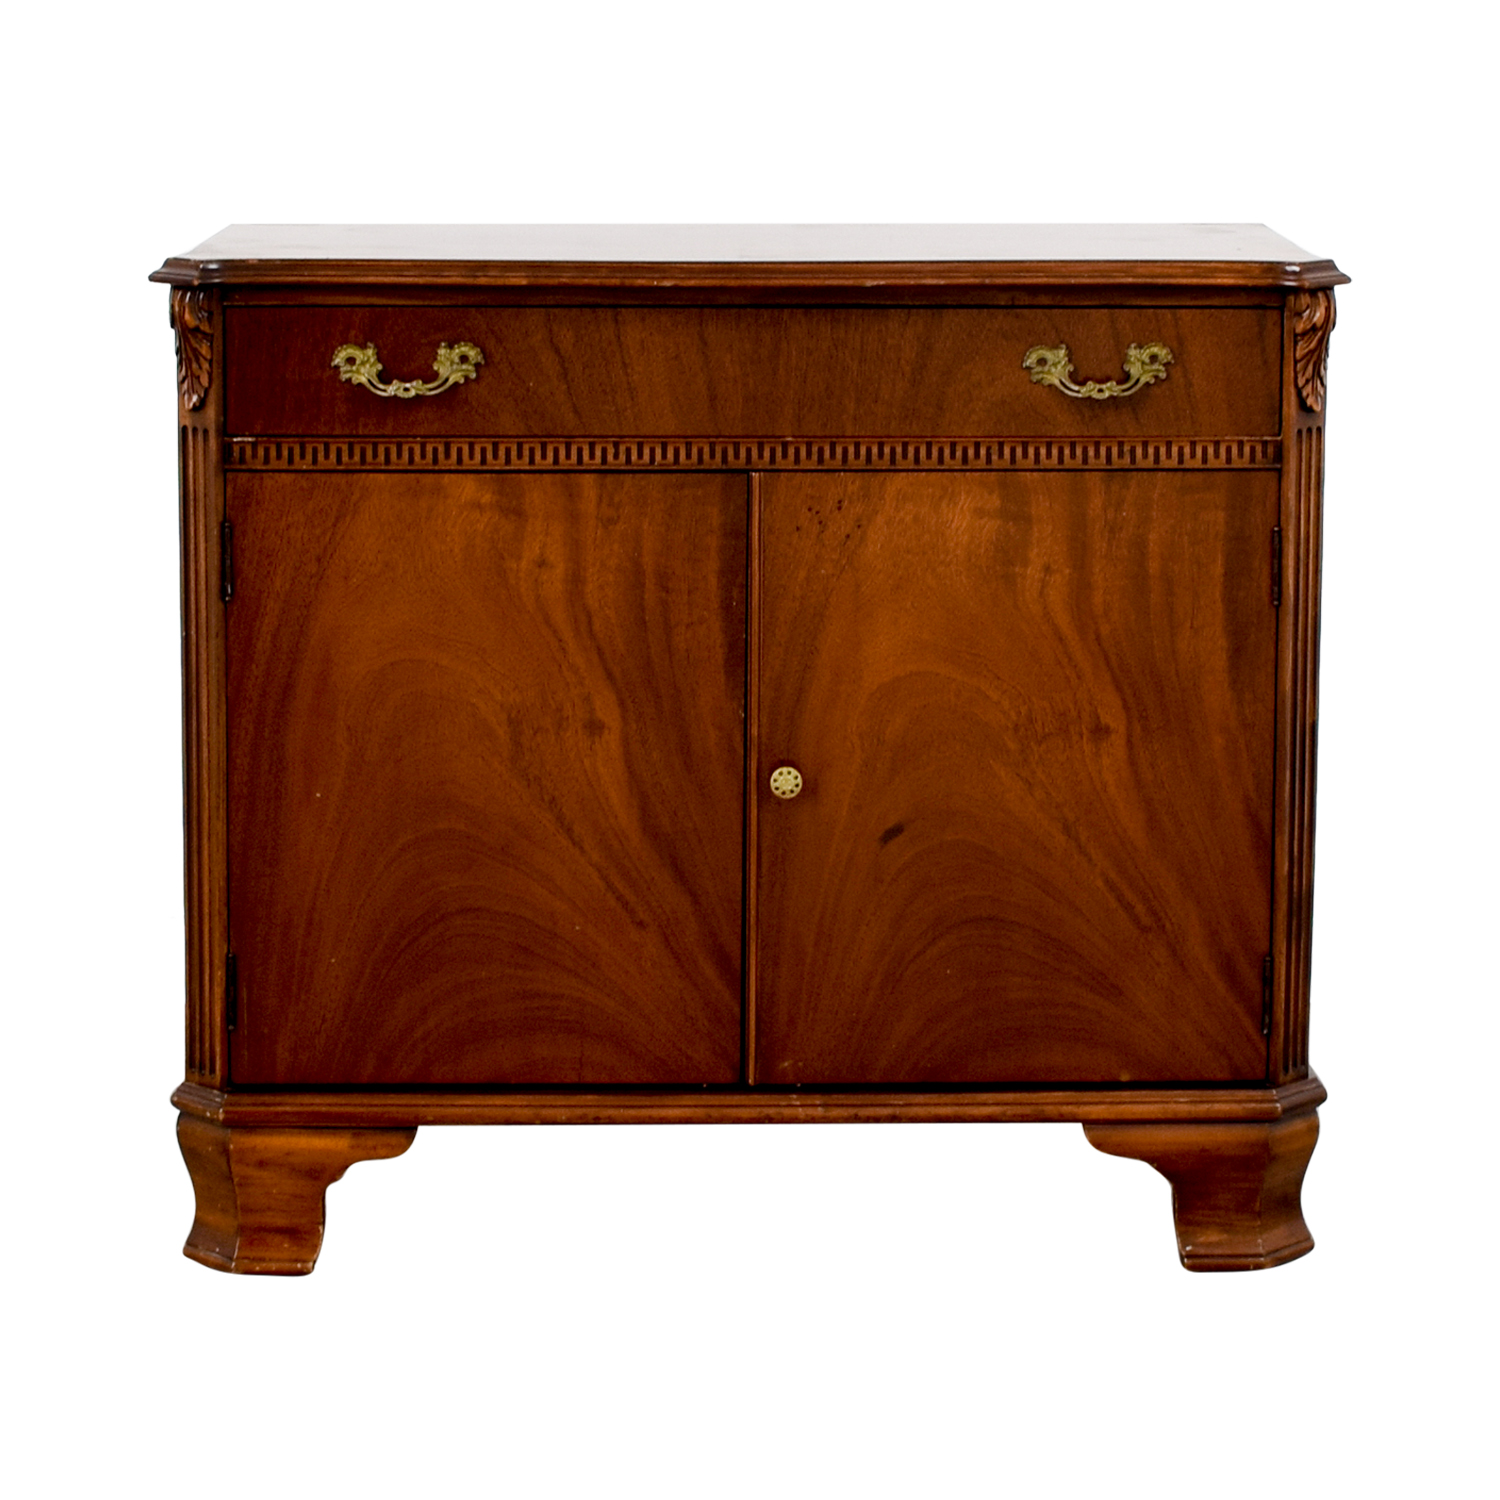 Merveilleux John Stuart Inc. John Stuart Inc. Antique One Drawer With Storage Sideboard  Nj ...